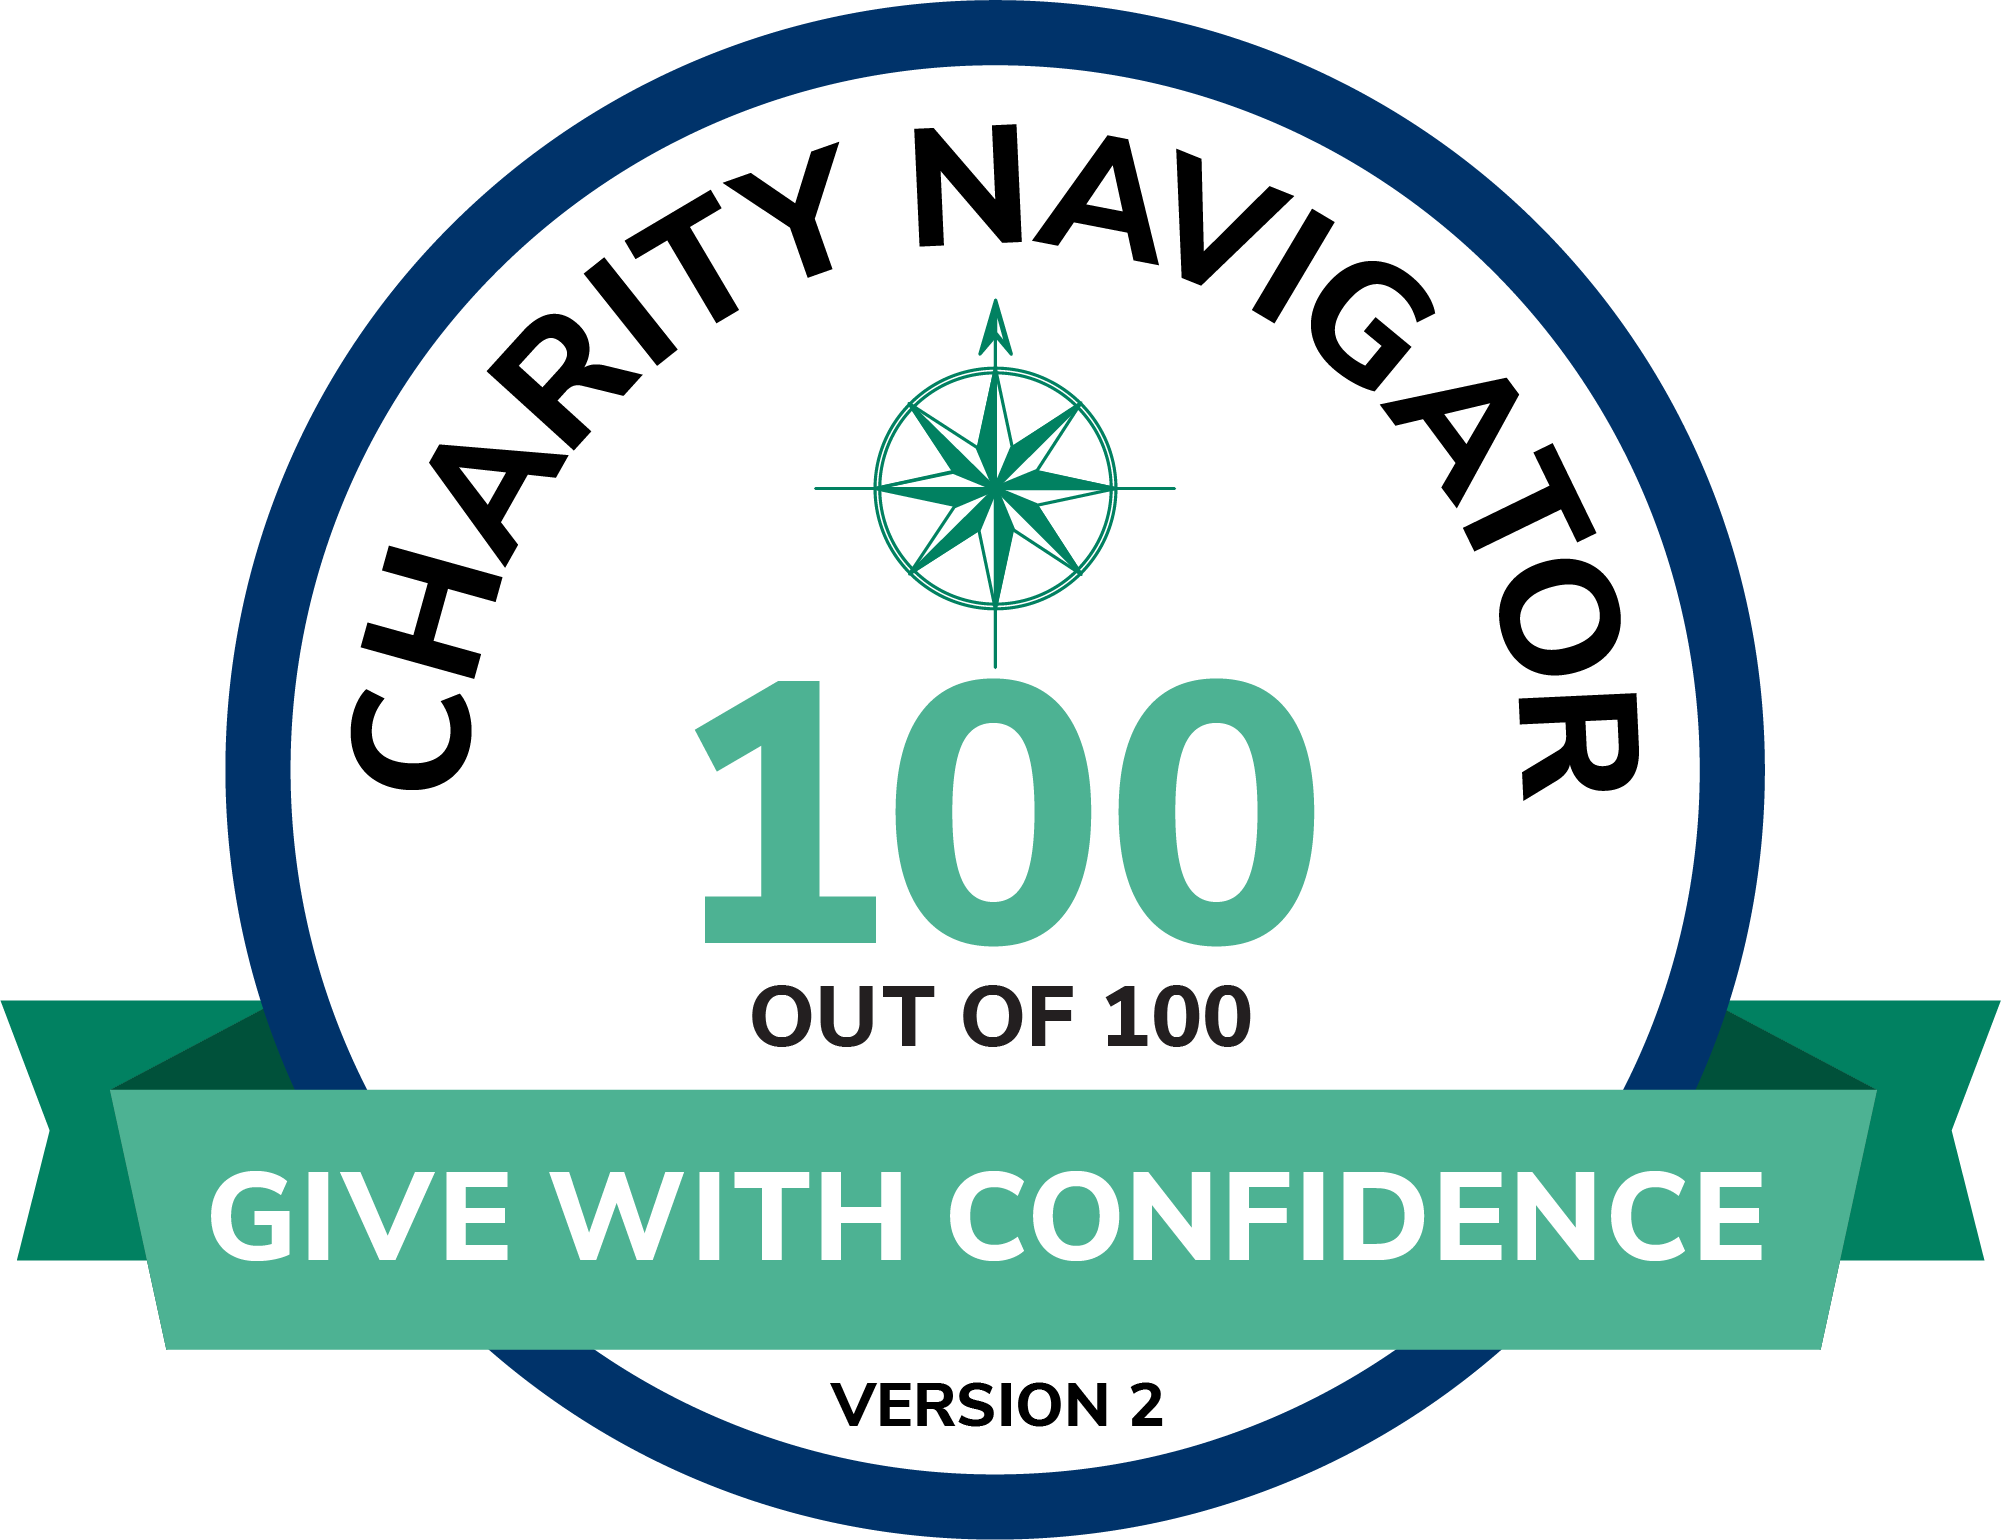 Charity Navigator Seal. 100 out of 100. Give with Confidence.